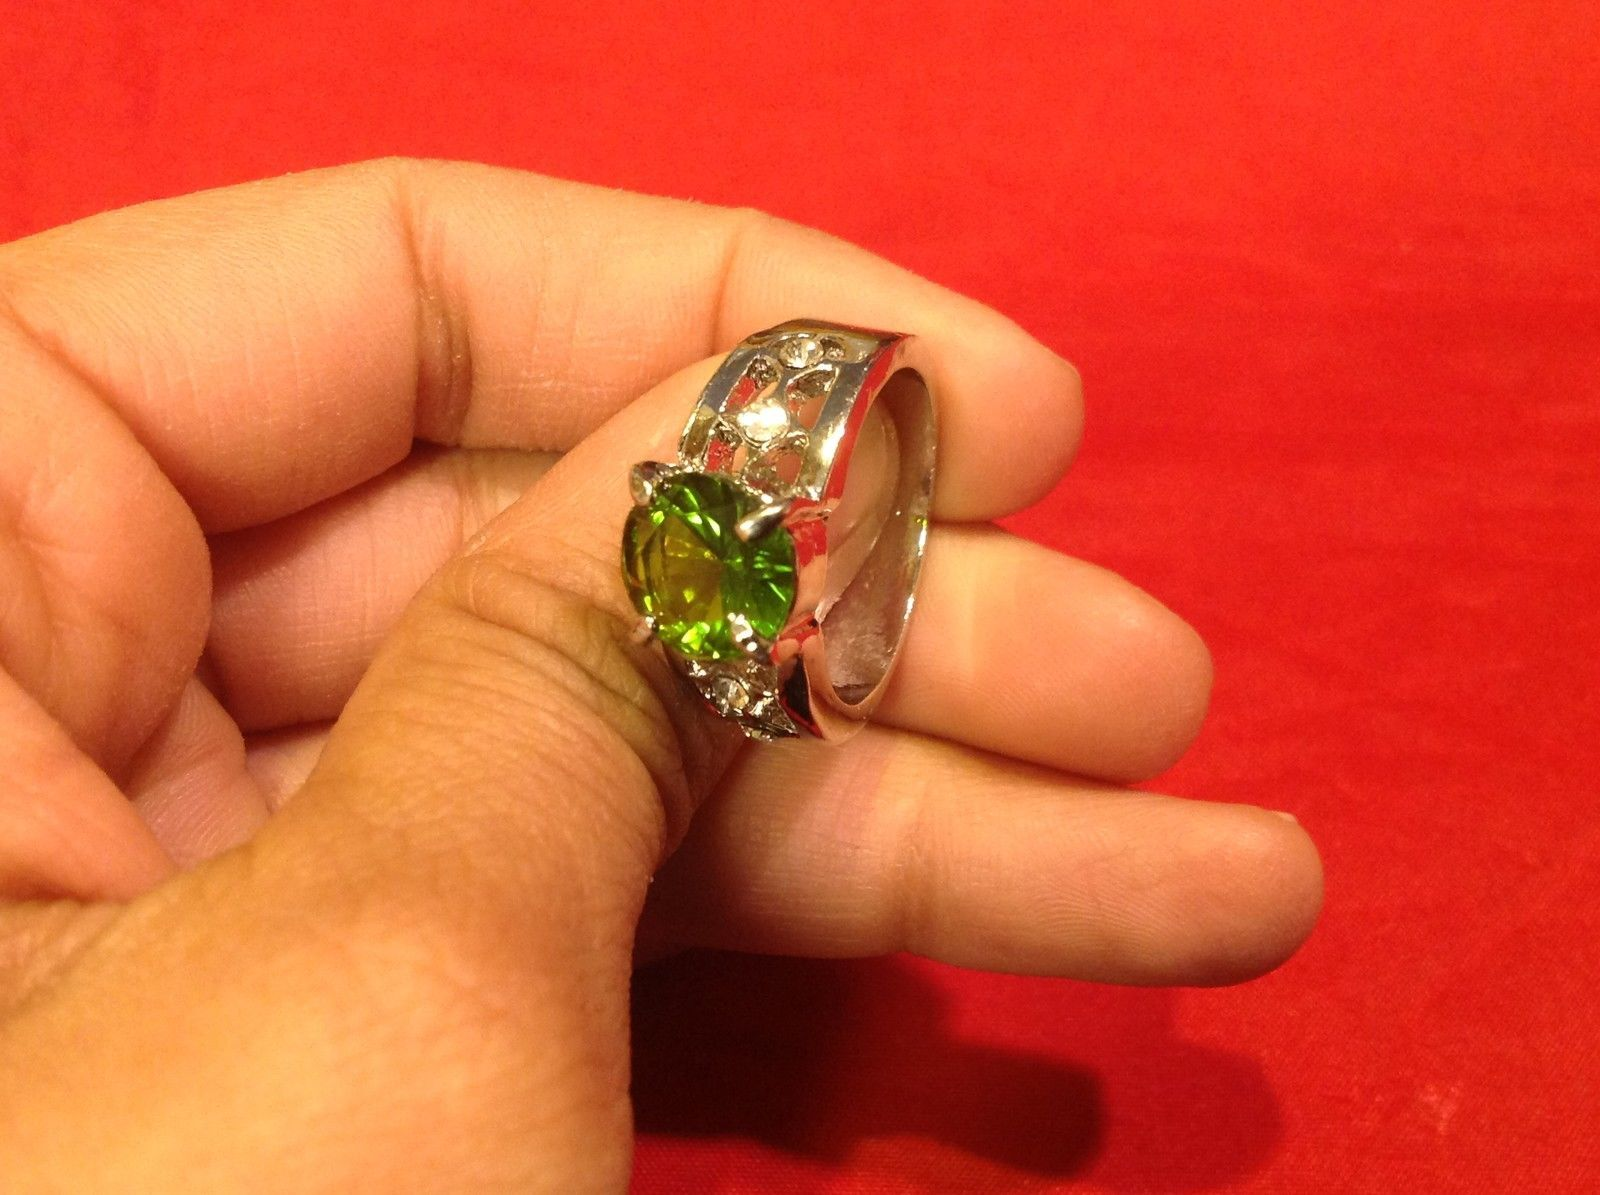 Stainless Steel Crystal Stone Ring 9.1 Green Silver